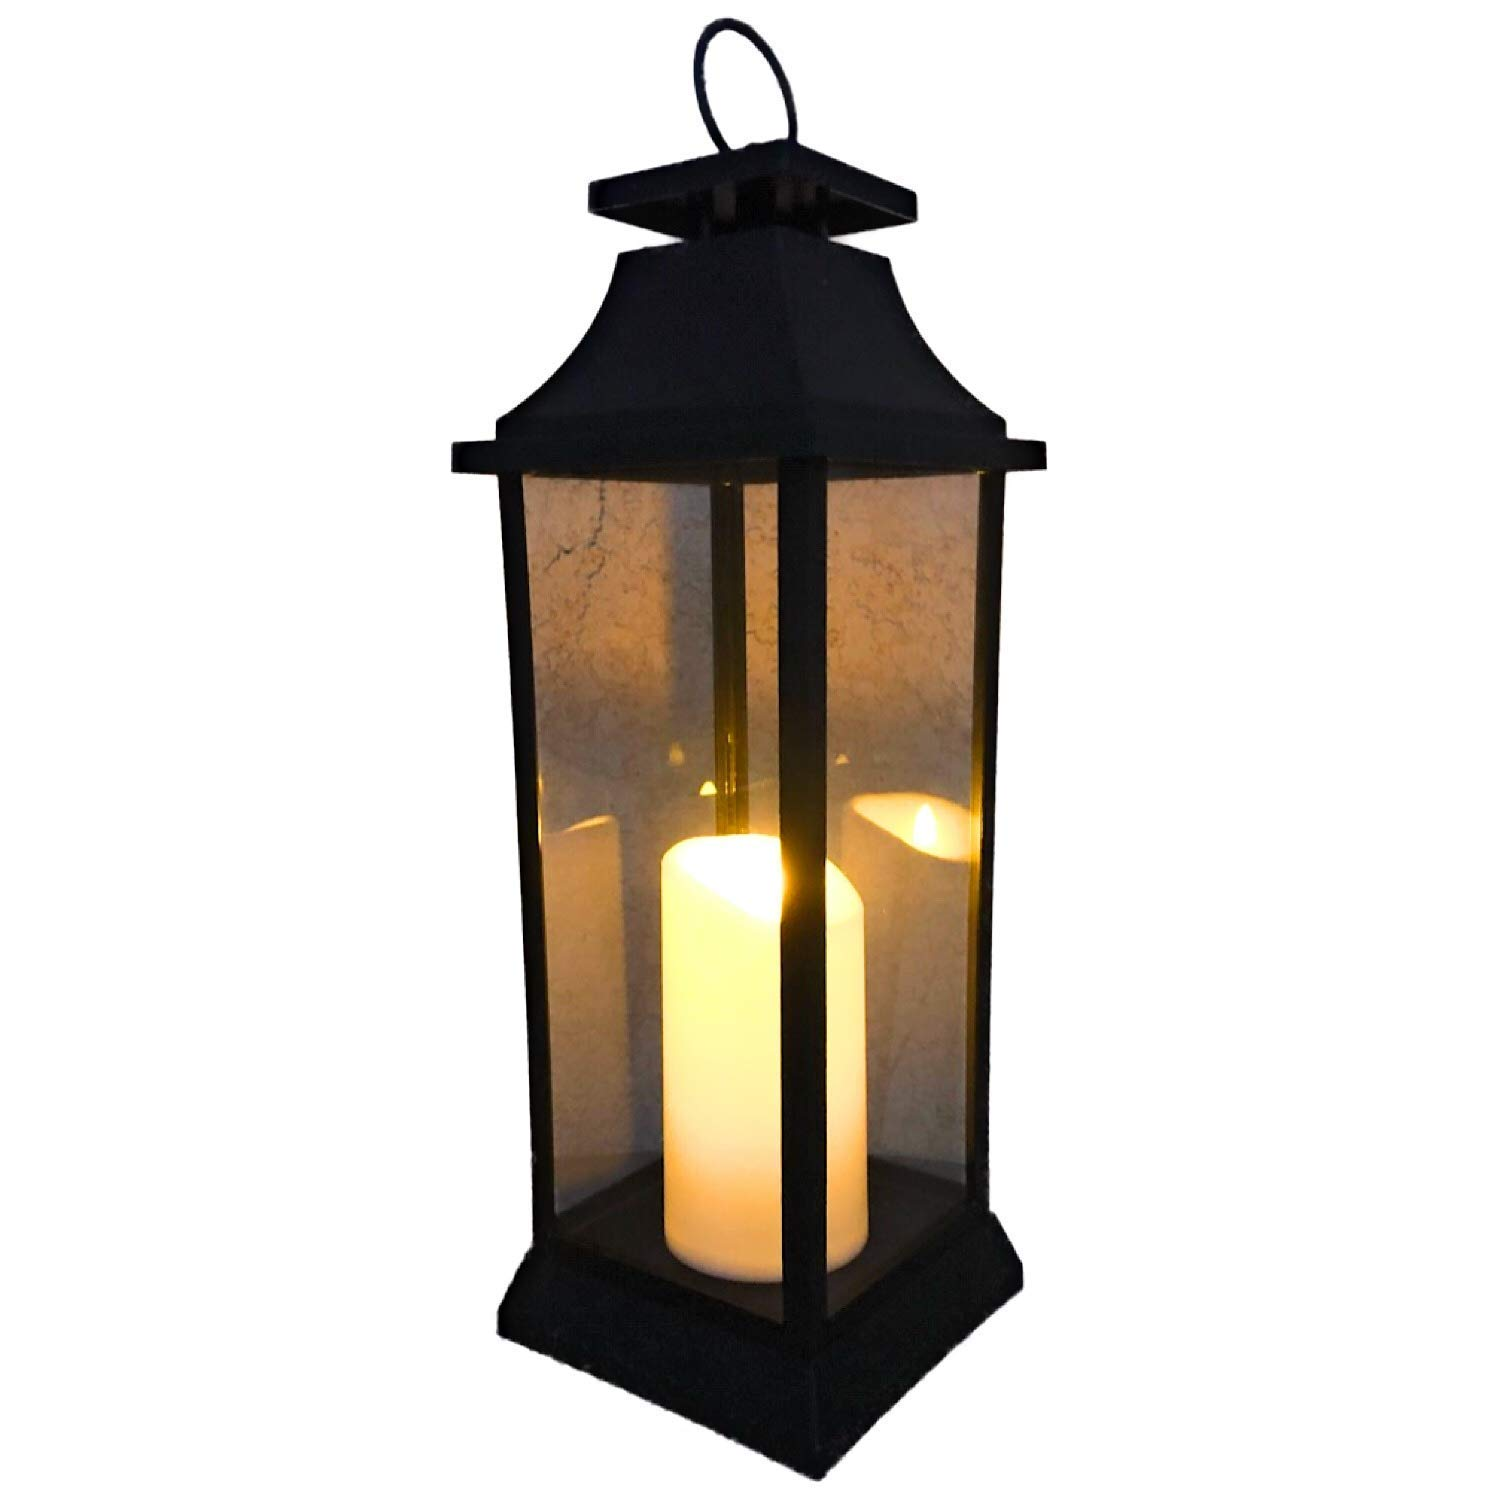 The Nifty Nook 20'' TALL Outdoor Candle Lantern with Flameless LED Lighted Pillar Candle, 5HR Timer, Weather Resistant - Decorative Outdoor Lanterns - Black by The Nifty Nook